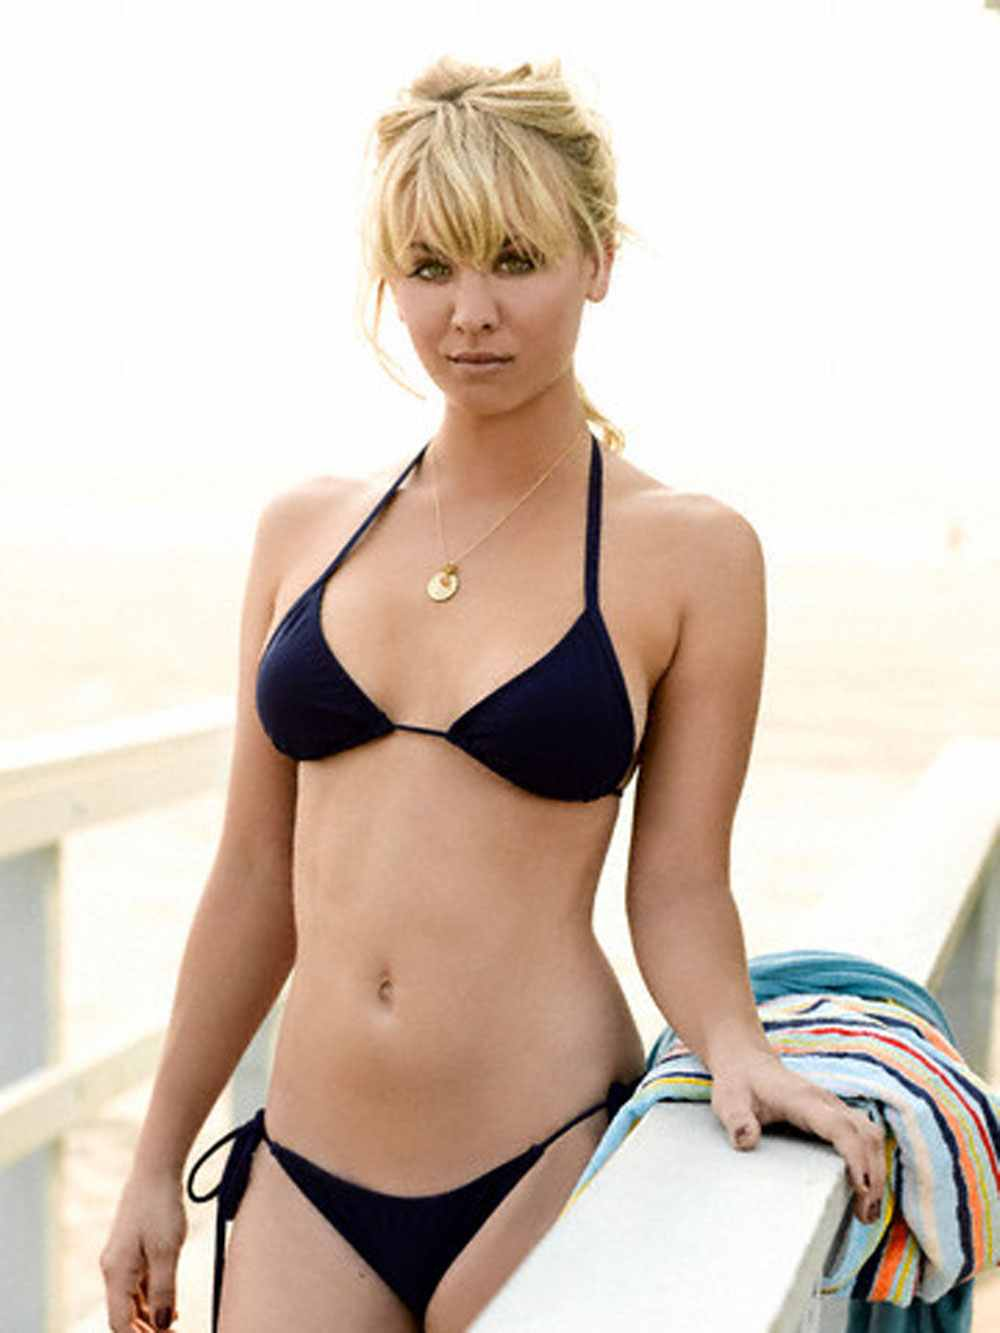 Kayley cuoco bikini with